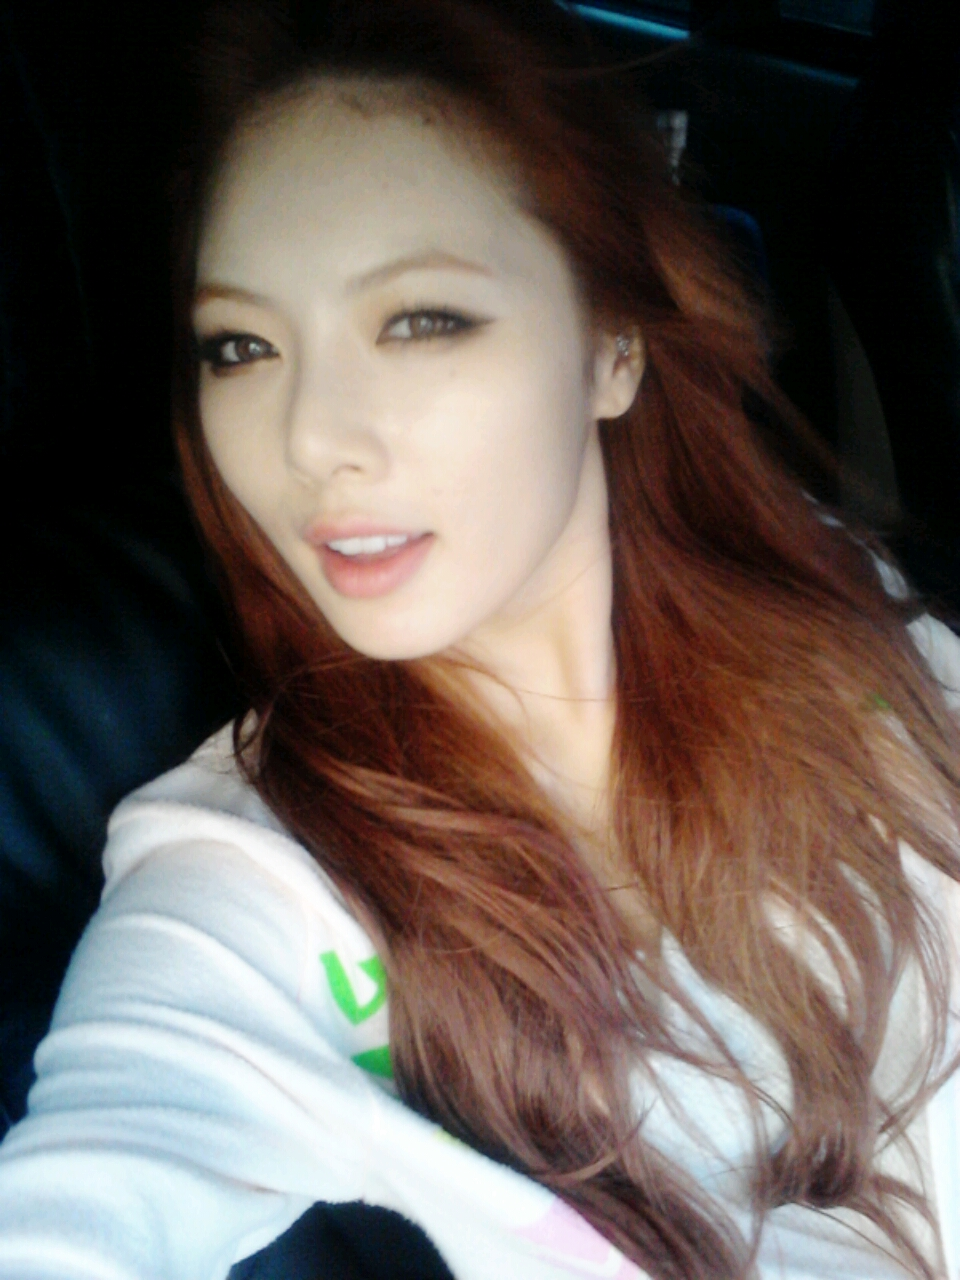 4Minute's HyunA reveals a new hairstyle | kpopunli